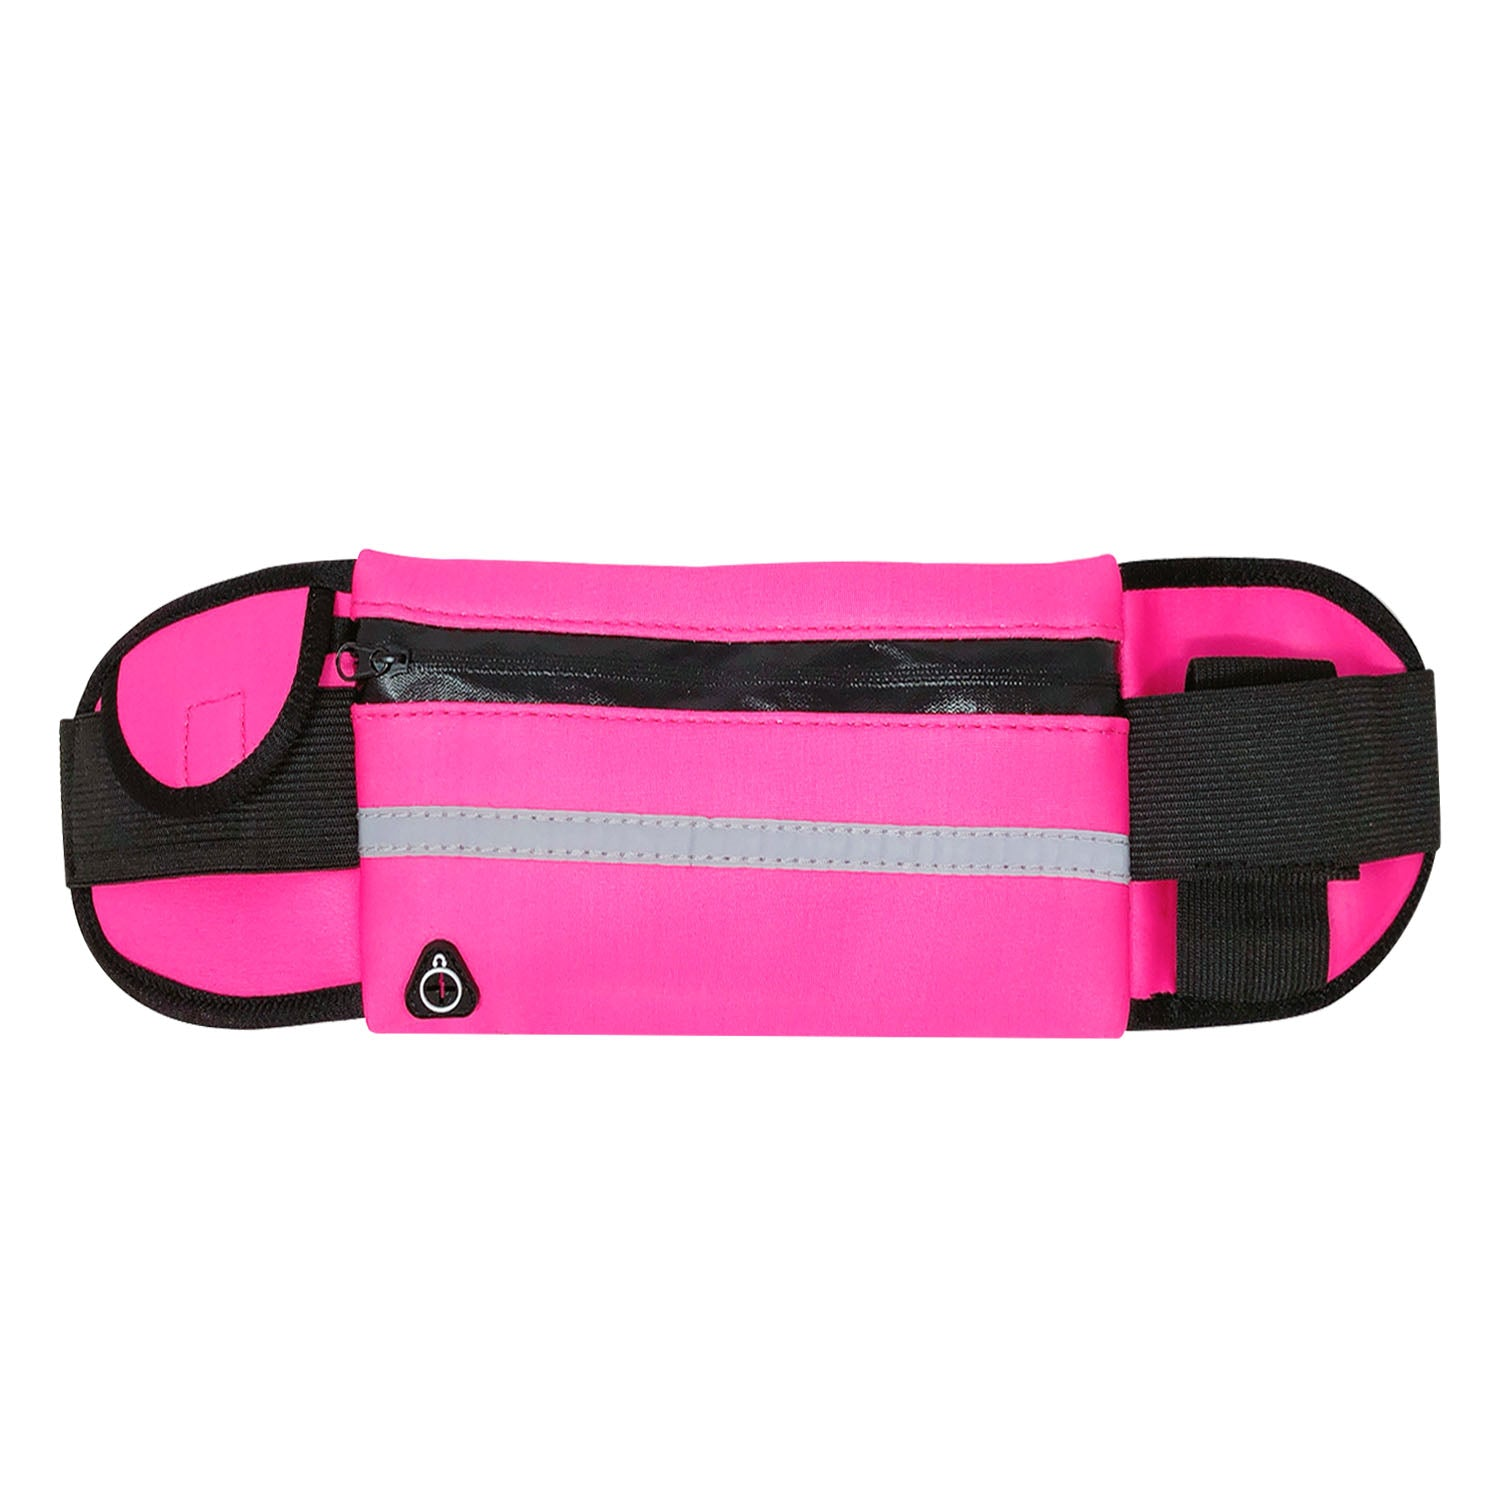 Wolf Moon Bird Sport Waist Pack Fanny Pack Adjustable For Hike